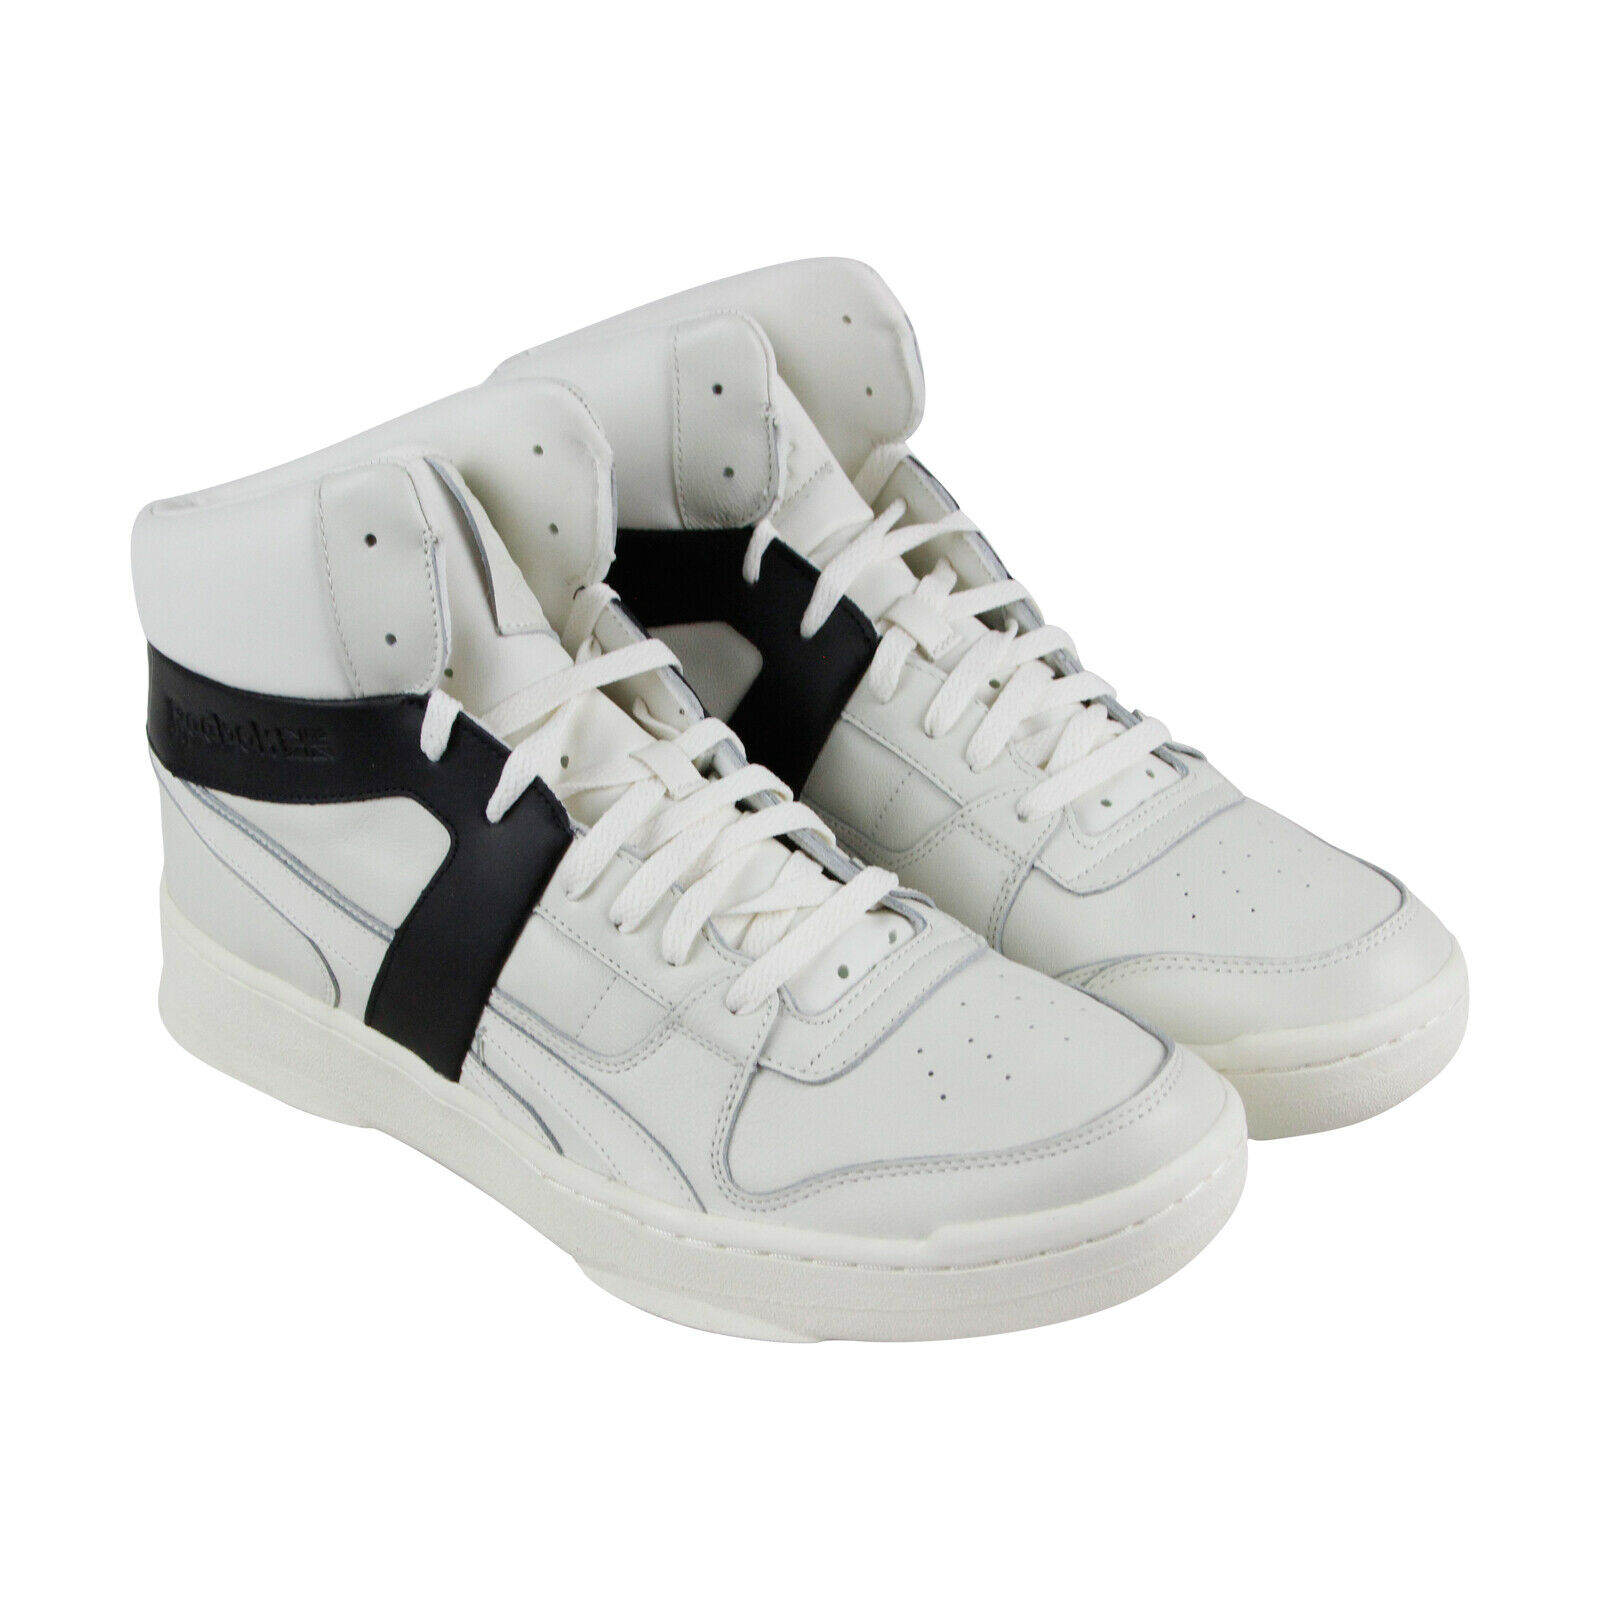 Reebok Bb 5600 Premium CN1984 Mens White Leather Casual High Top Sneakers Shoes